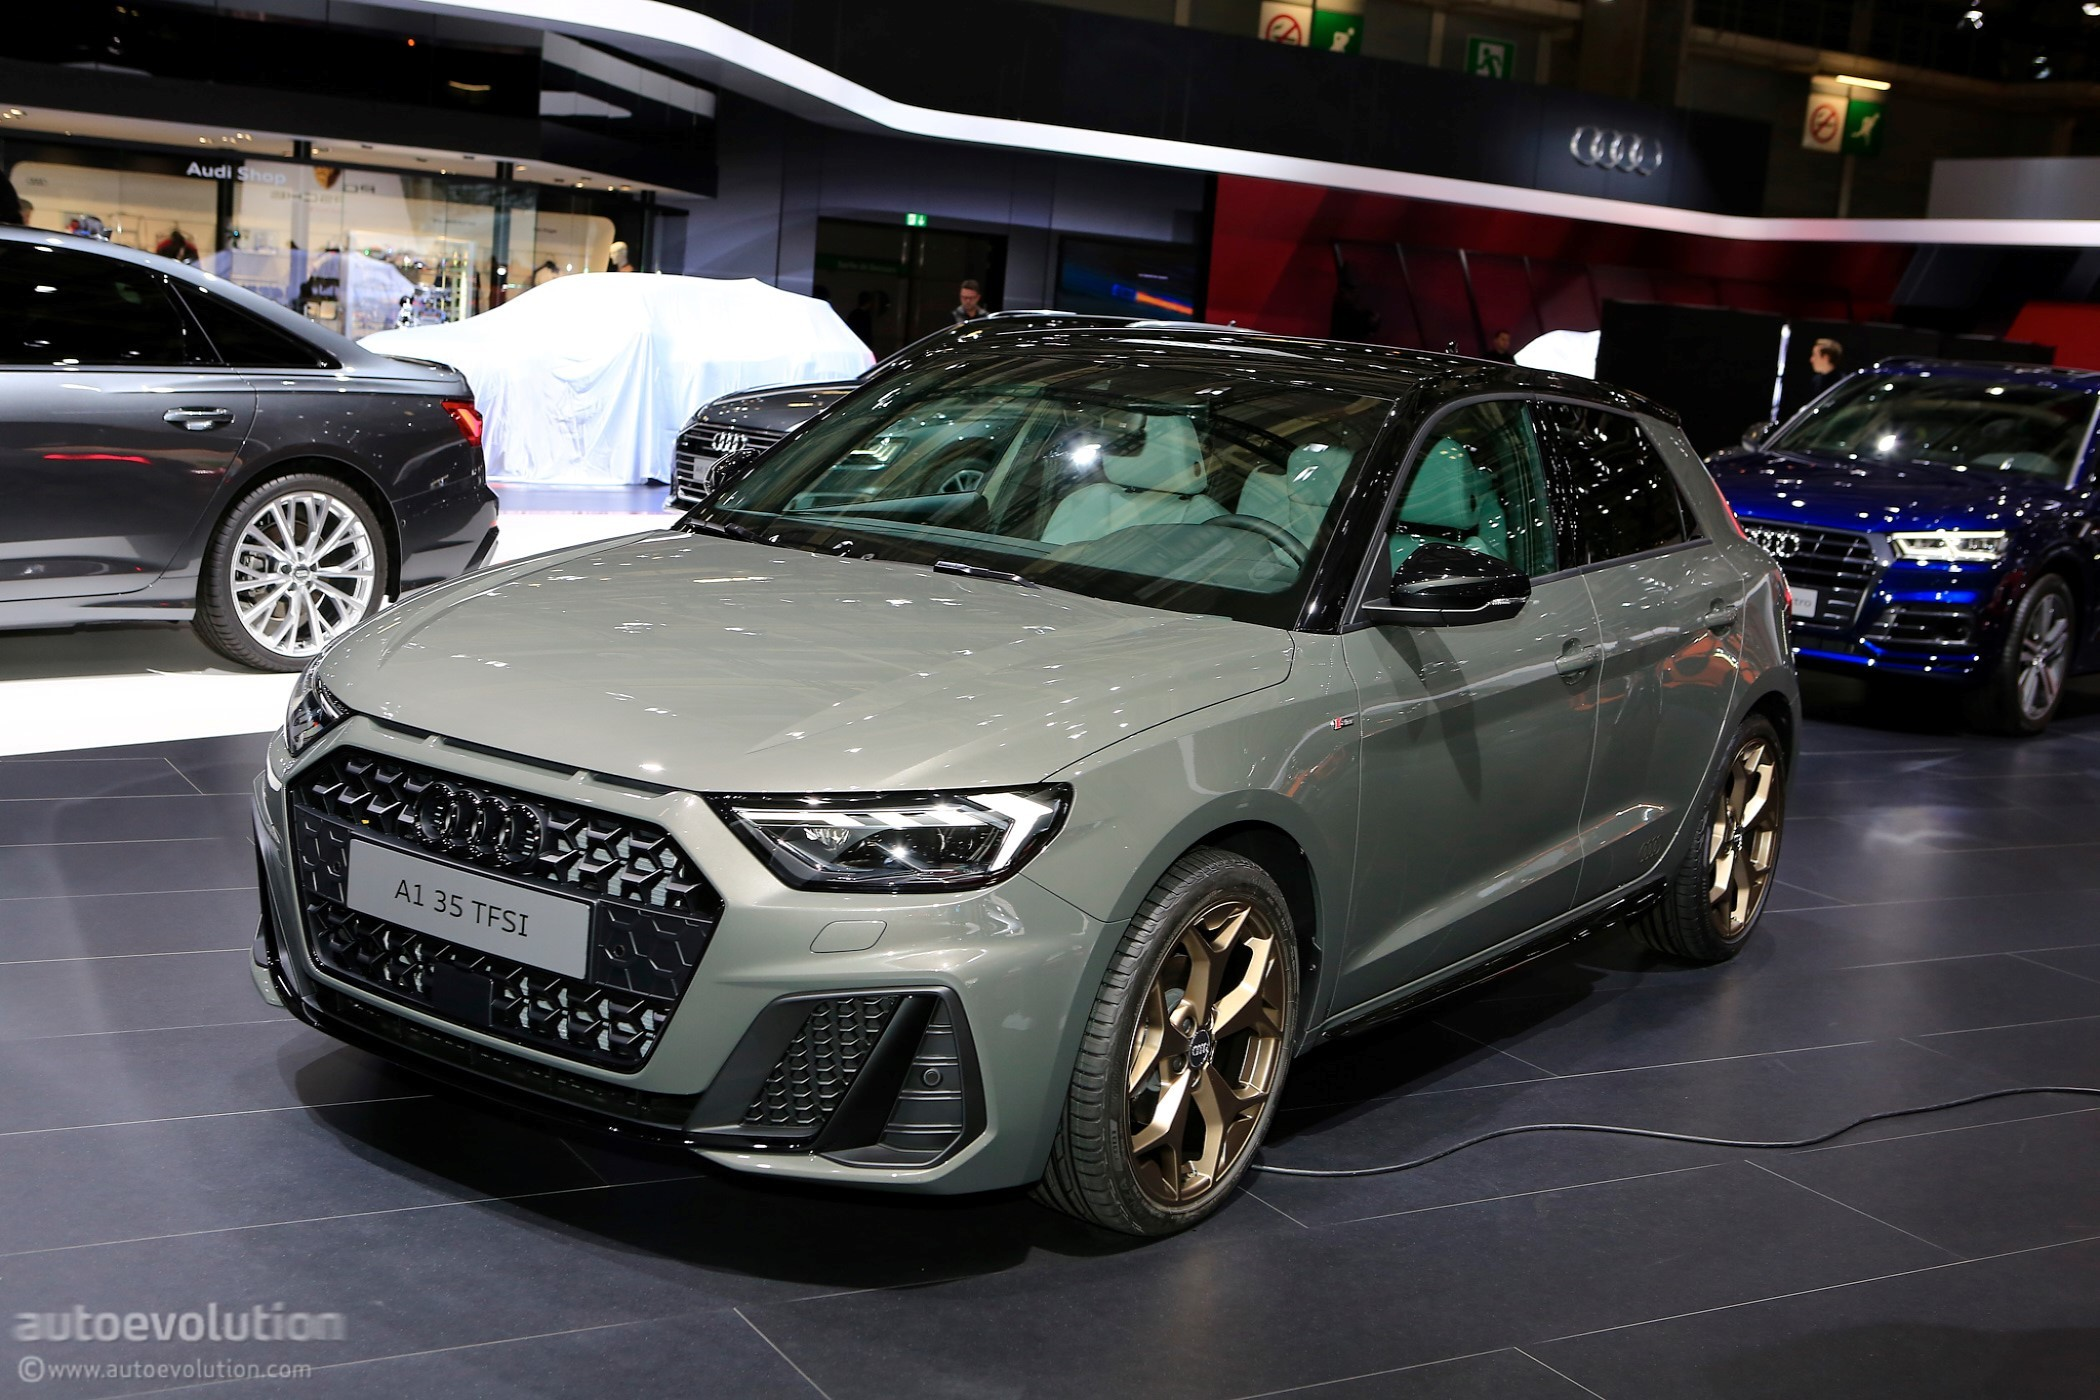 2018 Paris Motor Show: New Audi A1 Sportback Looks Very ...